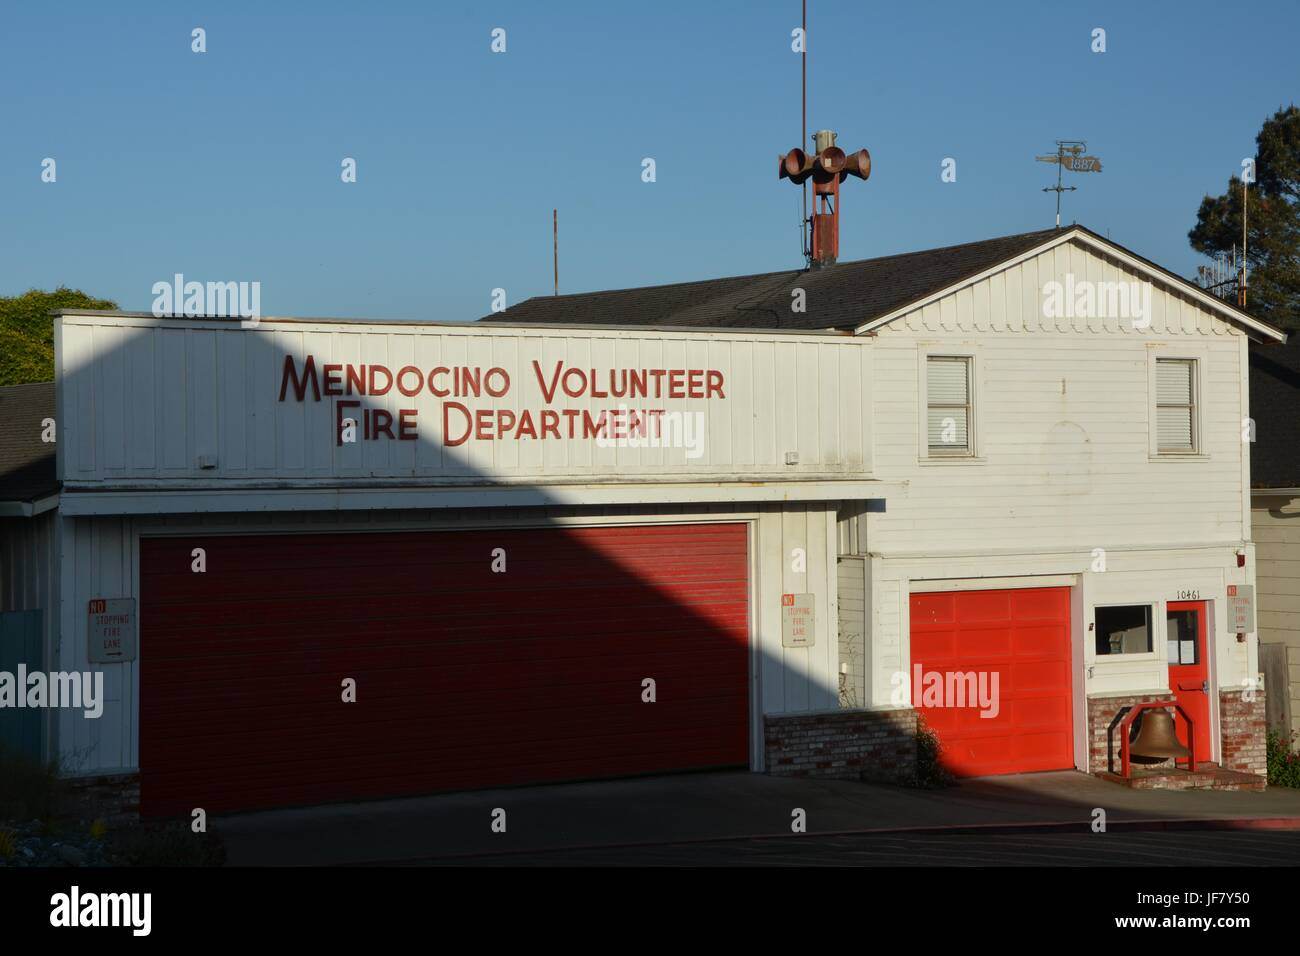 Mendocino Volunteer Fire Department from April 28, 2017, USA - Stock Image